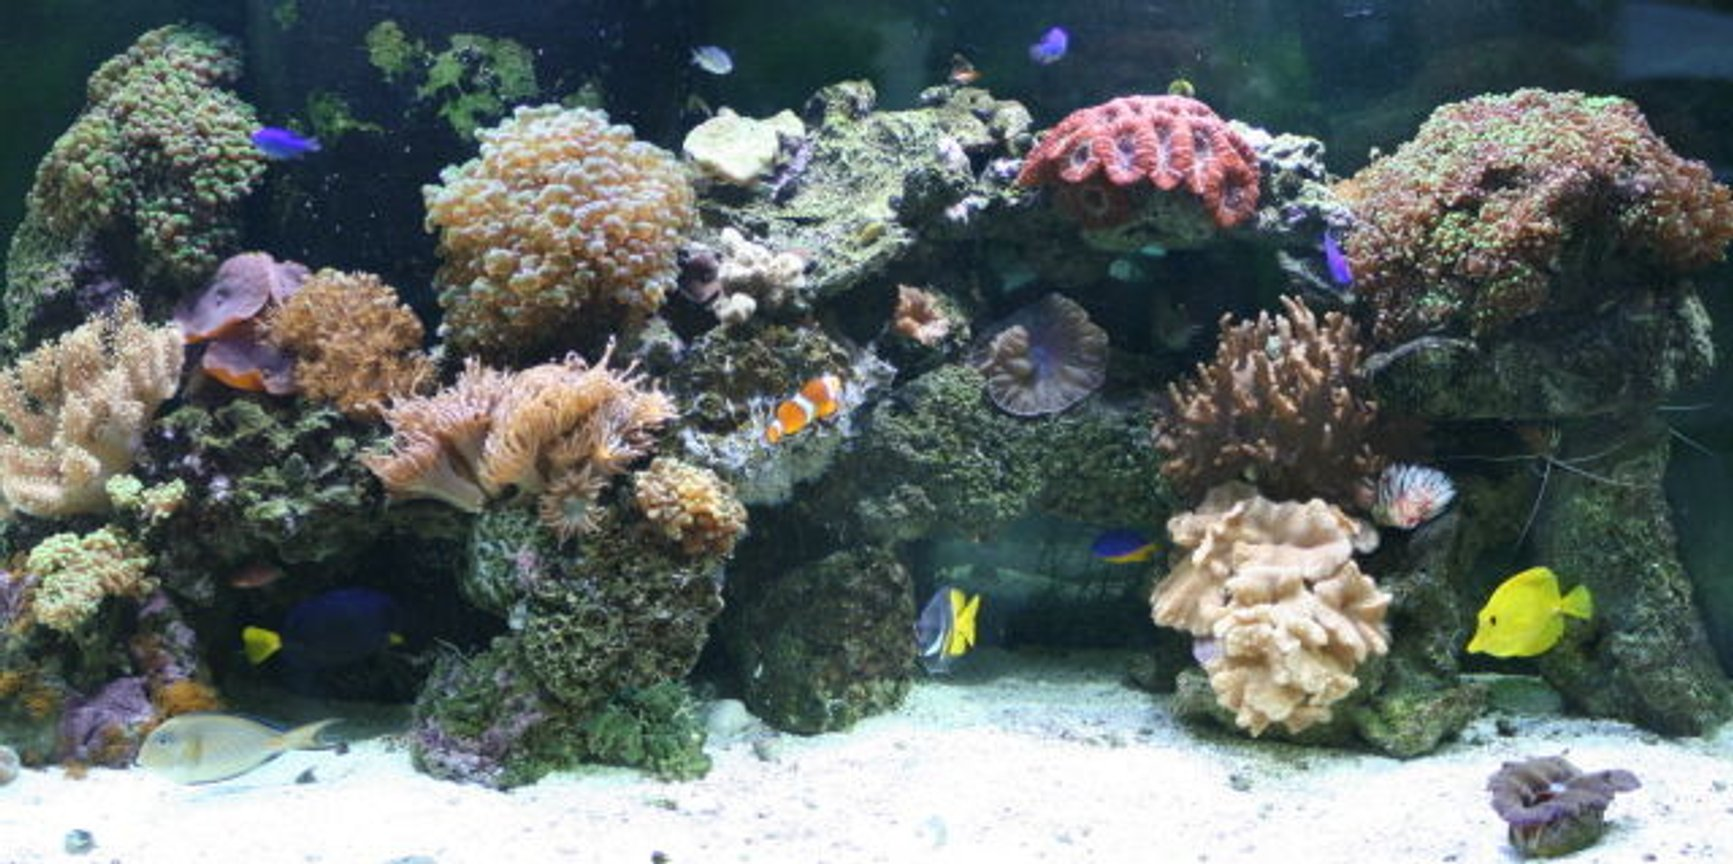 fish tank picture - 11-08